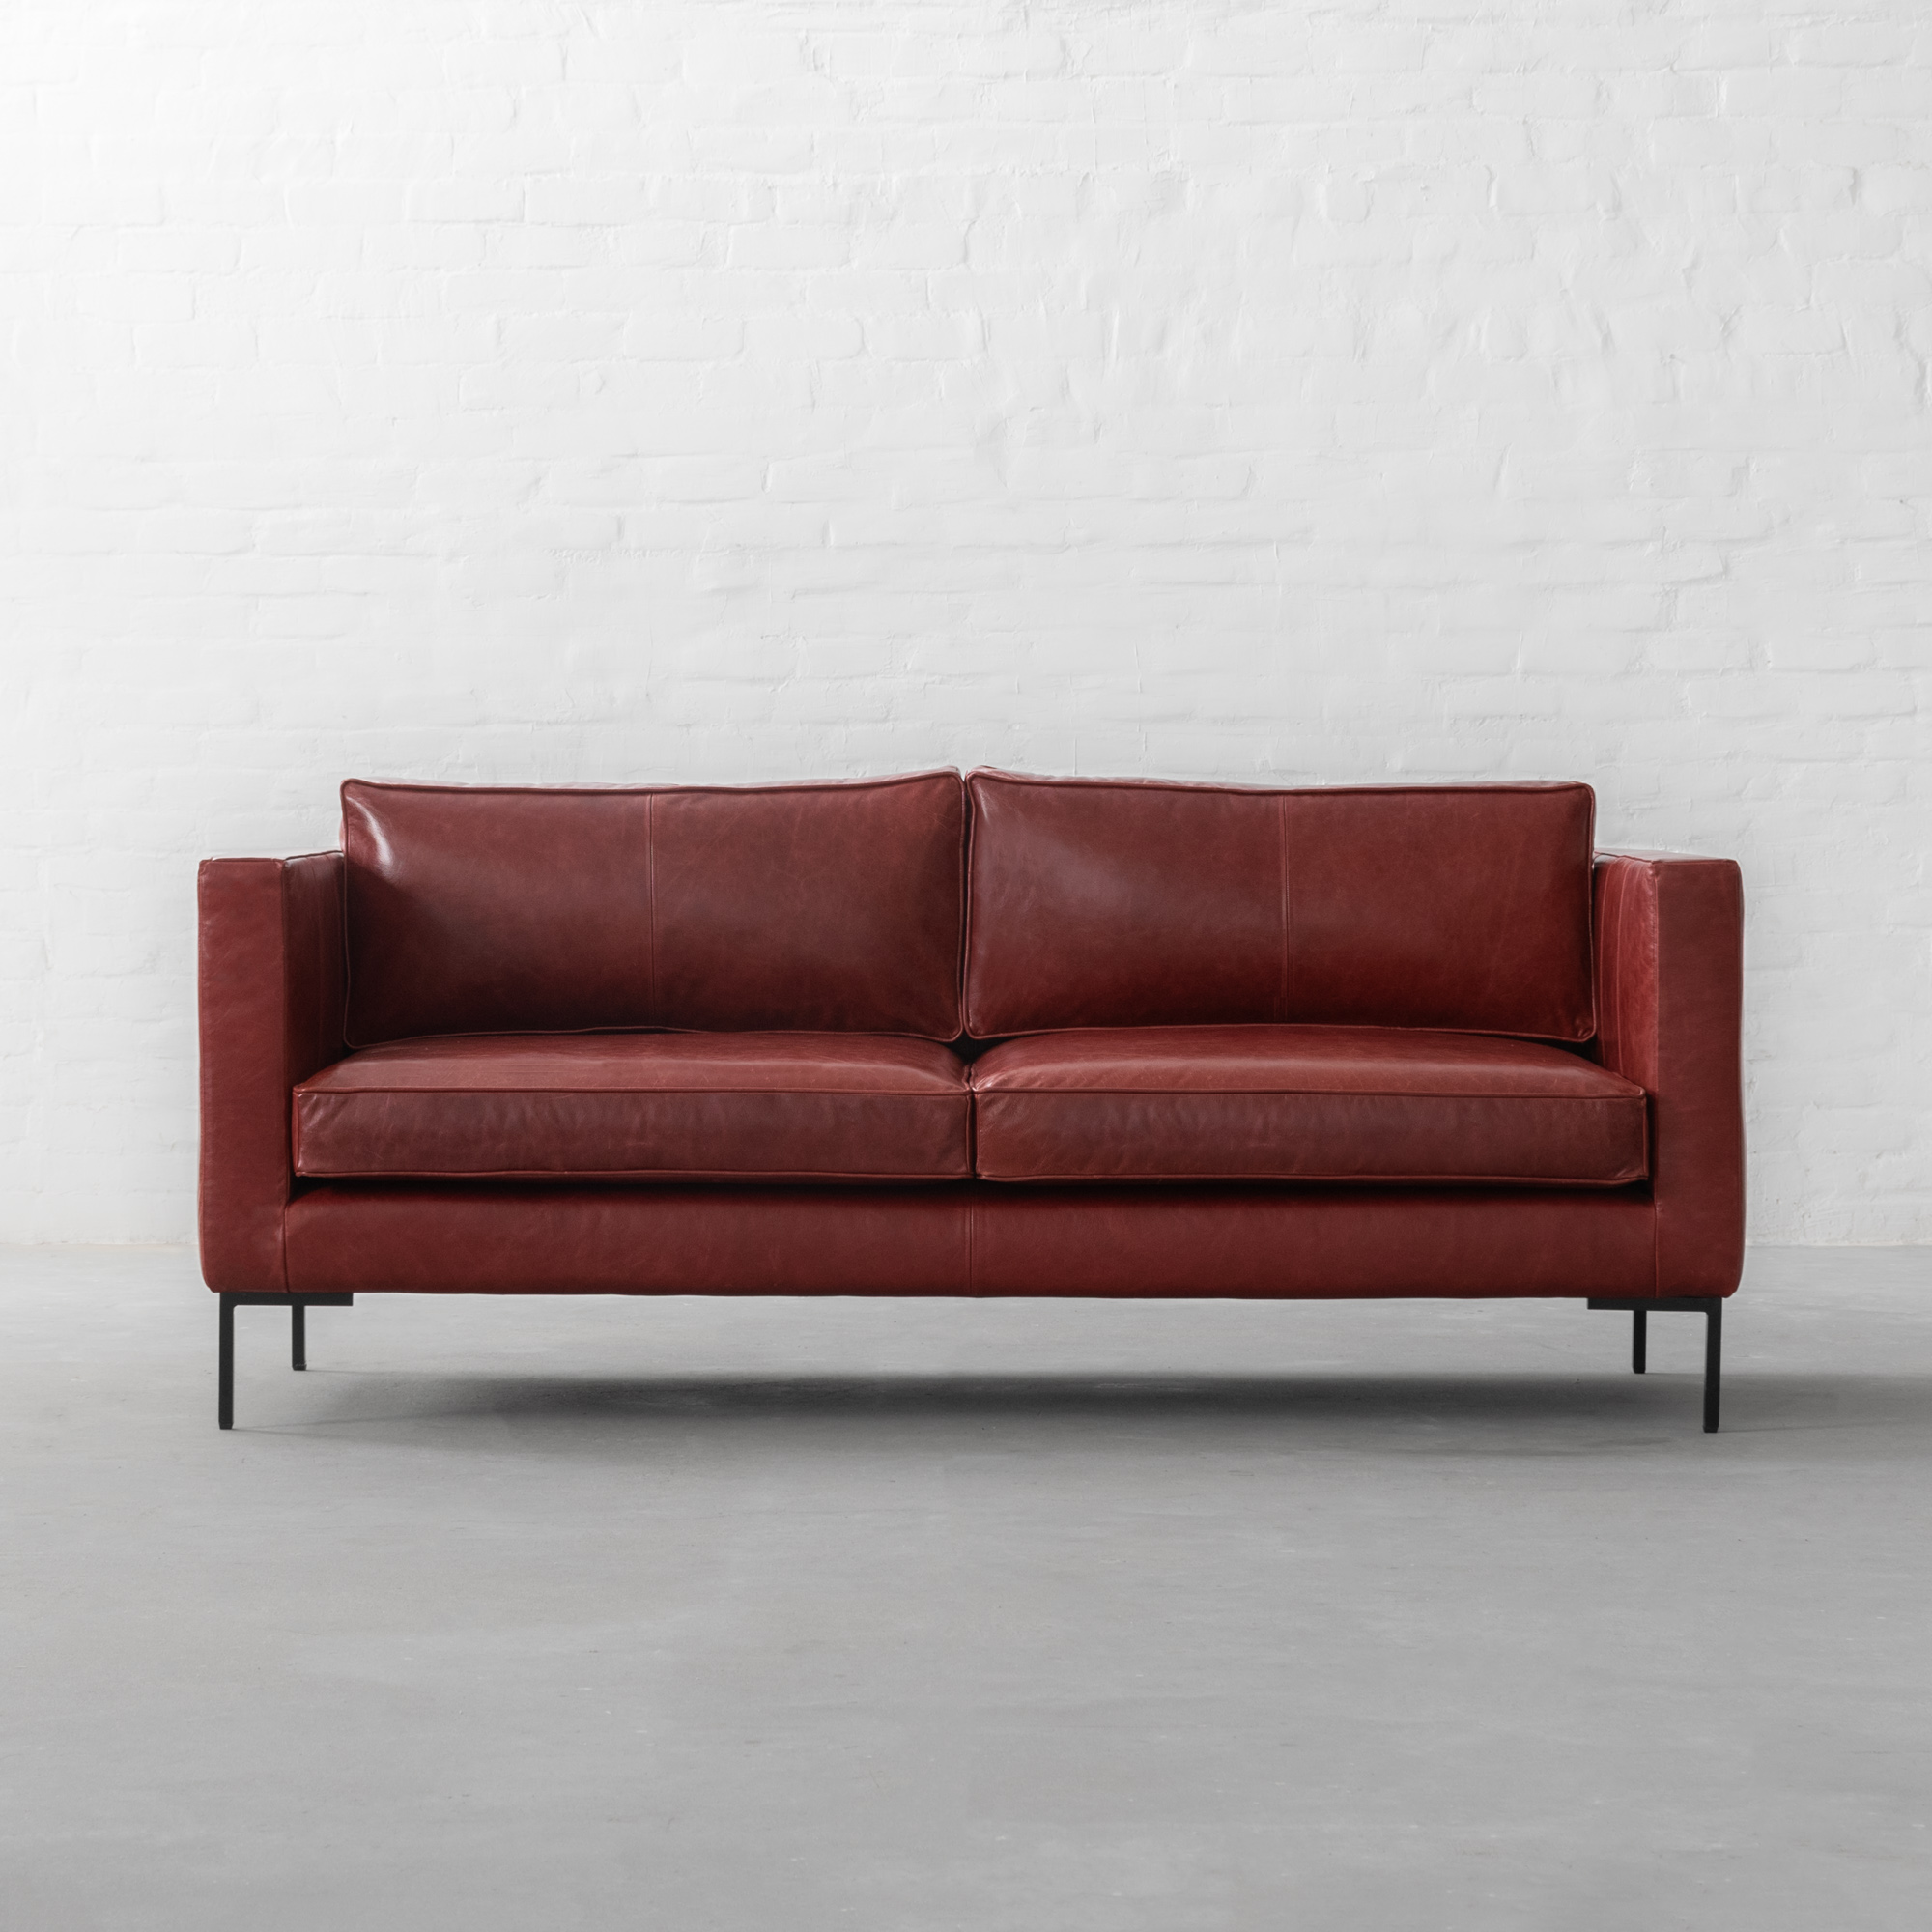 L.A Leather Sofa Collection